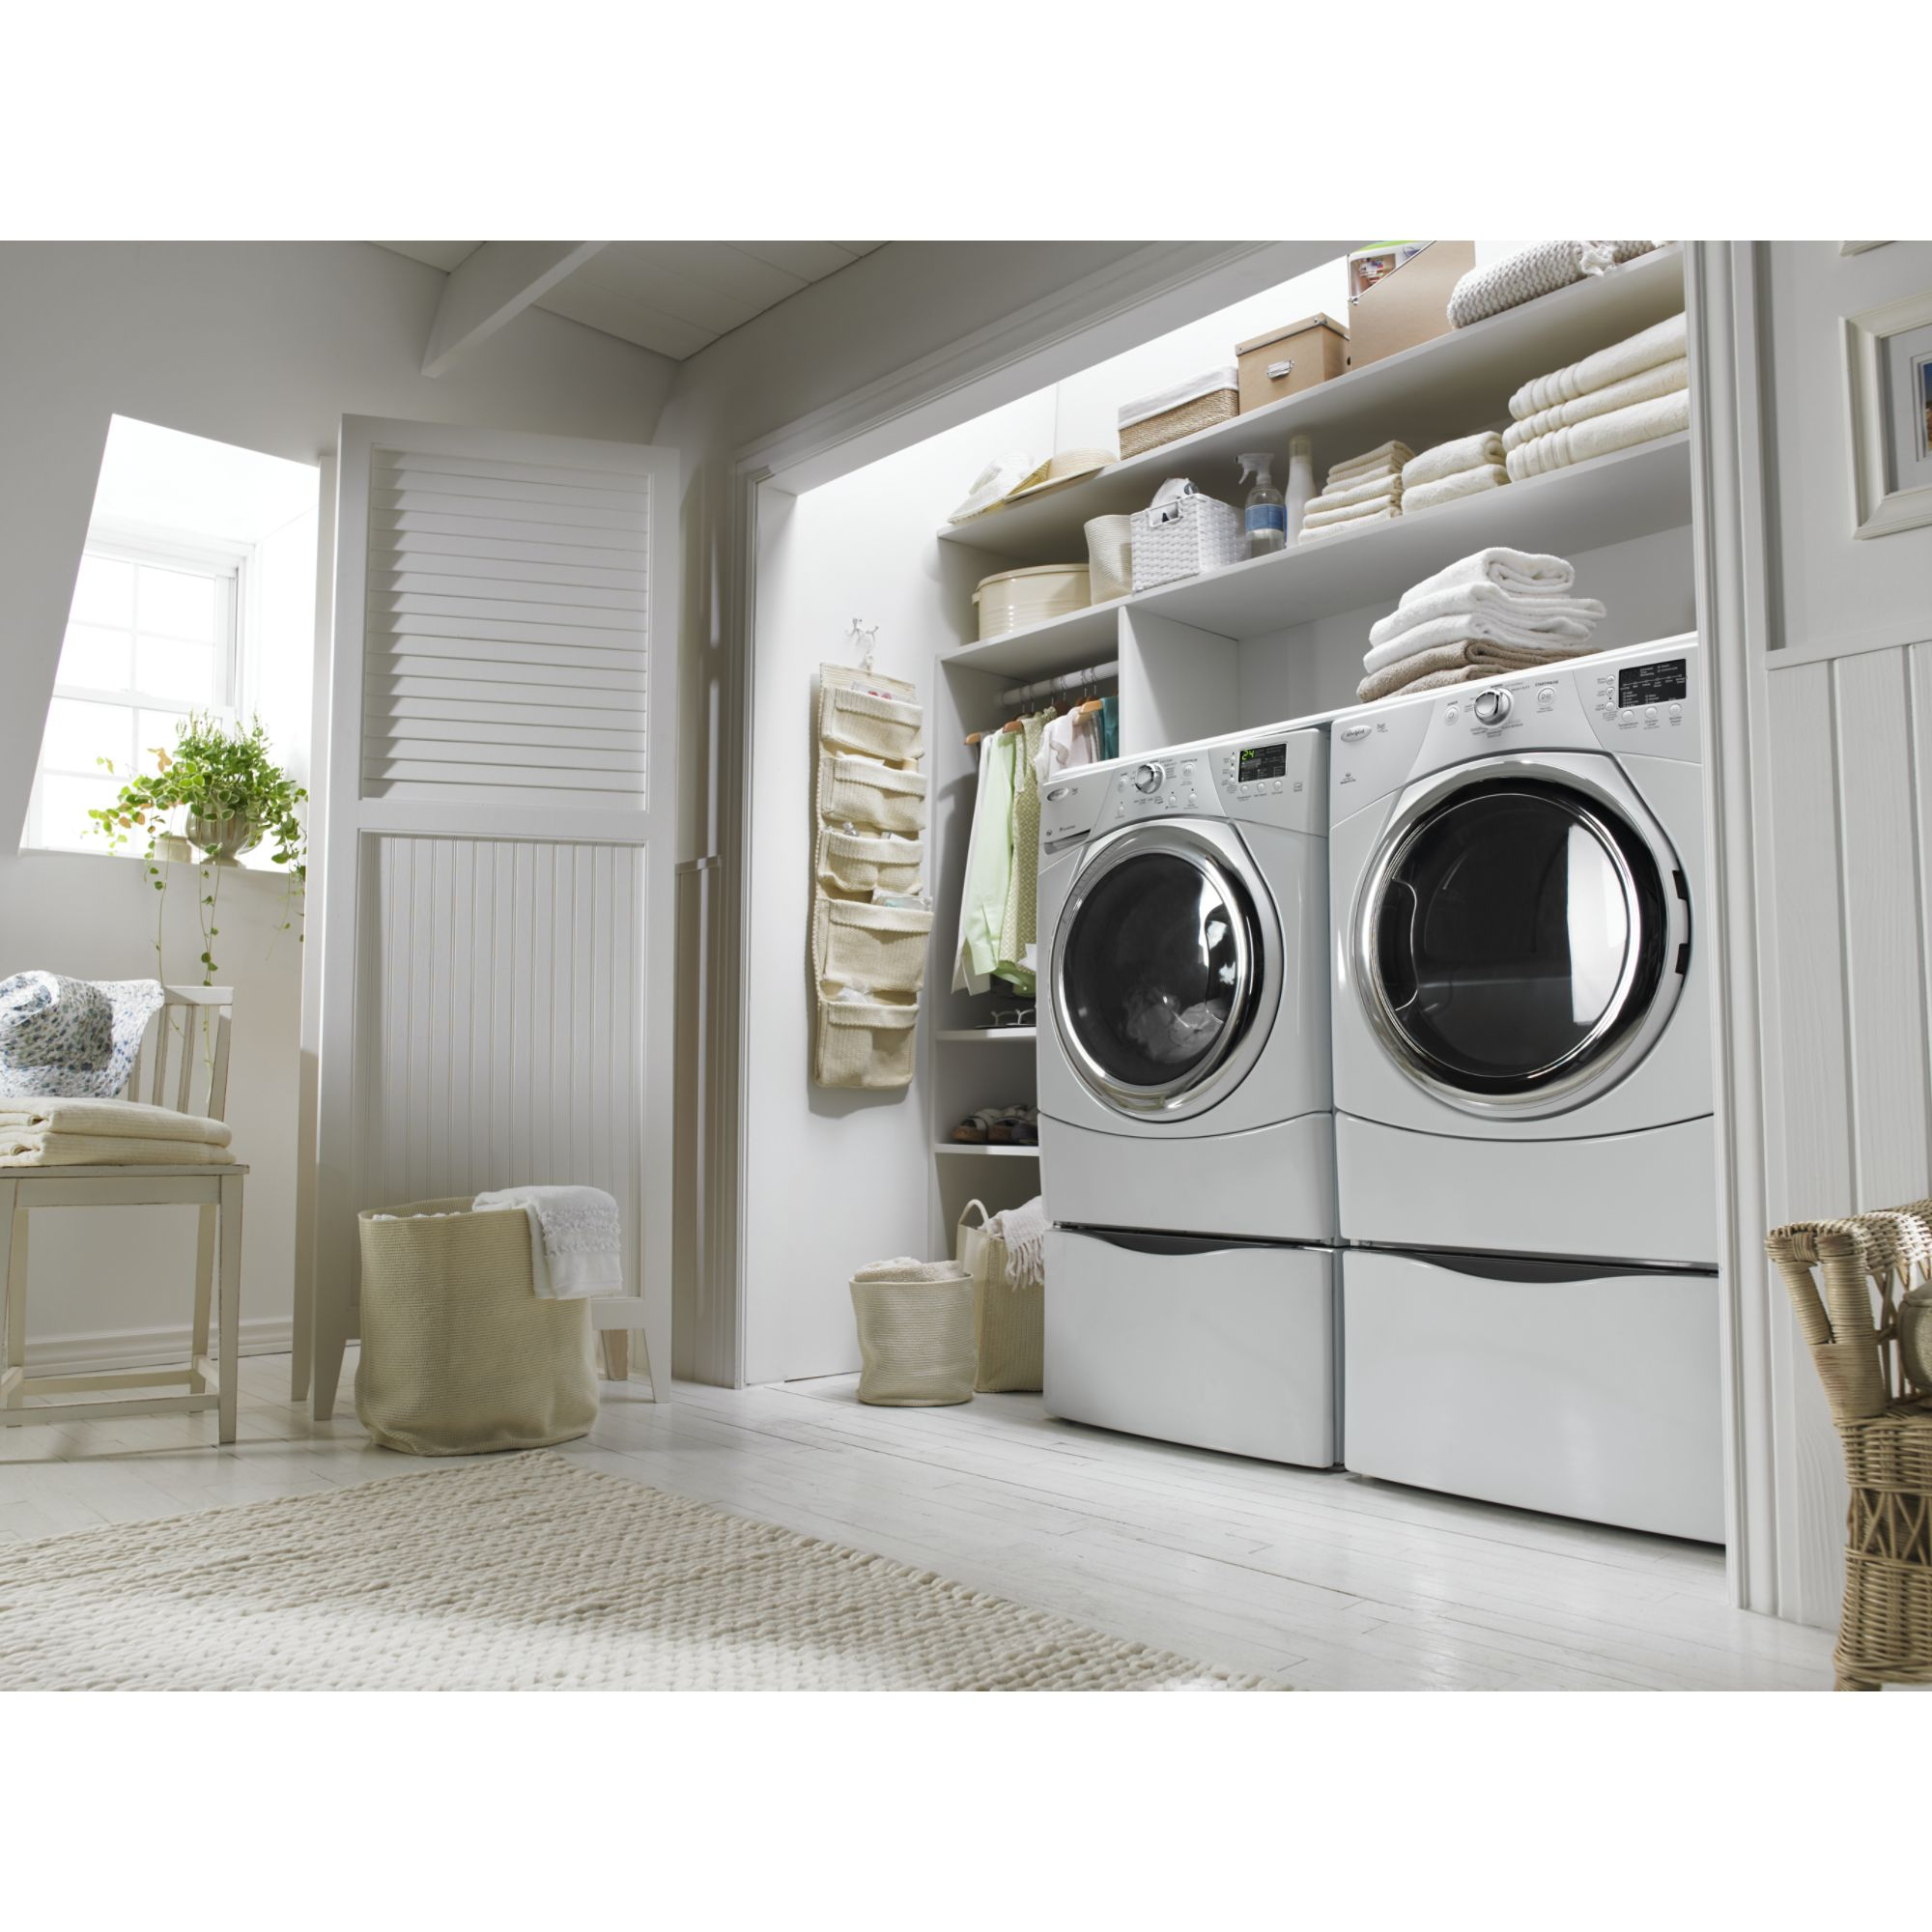 Whirlpool 6.7 cu. ft. Electric Dryer w/ Quick Refresh Steam Cycle - White